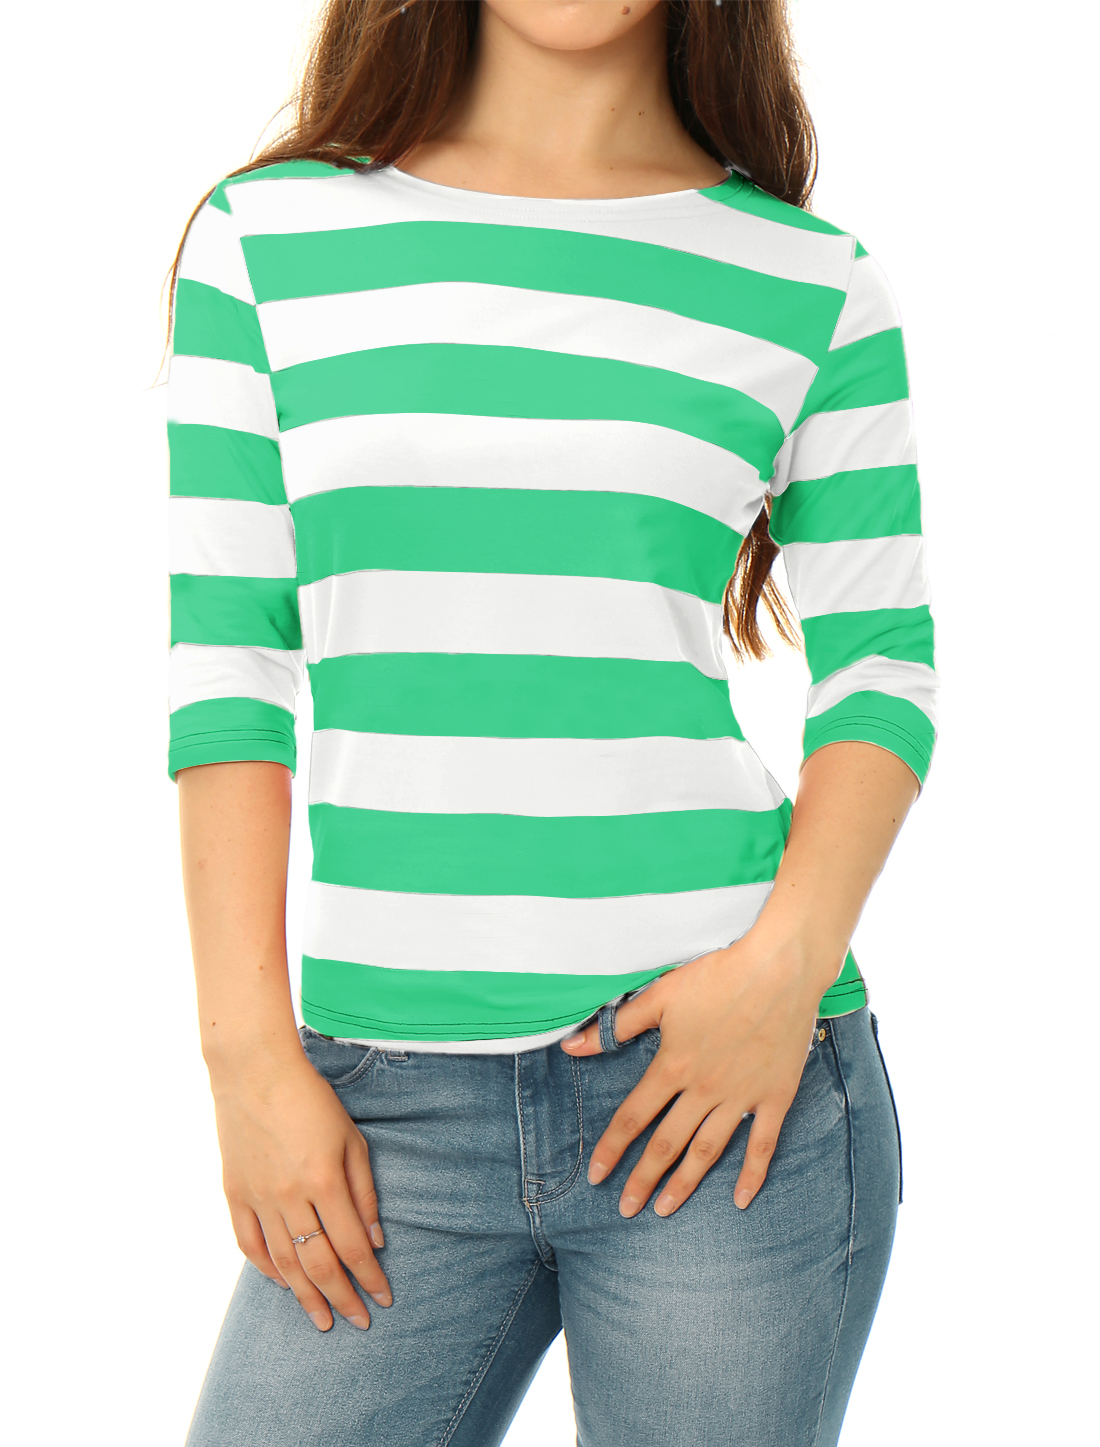 Women Elbow Sleeves Boat Neck Slim Fit Striped Tee Light Green XL